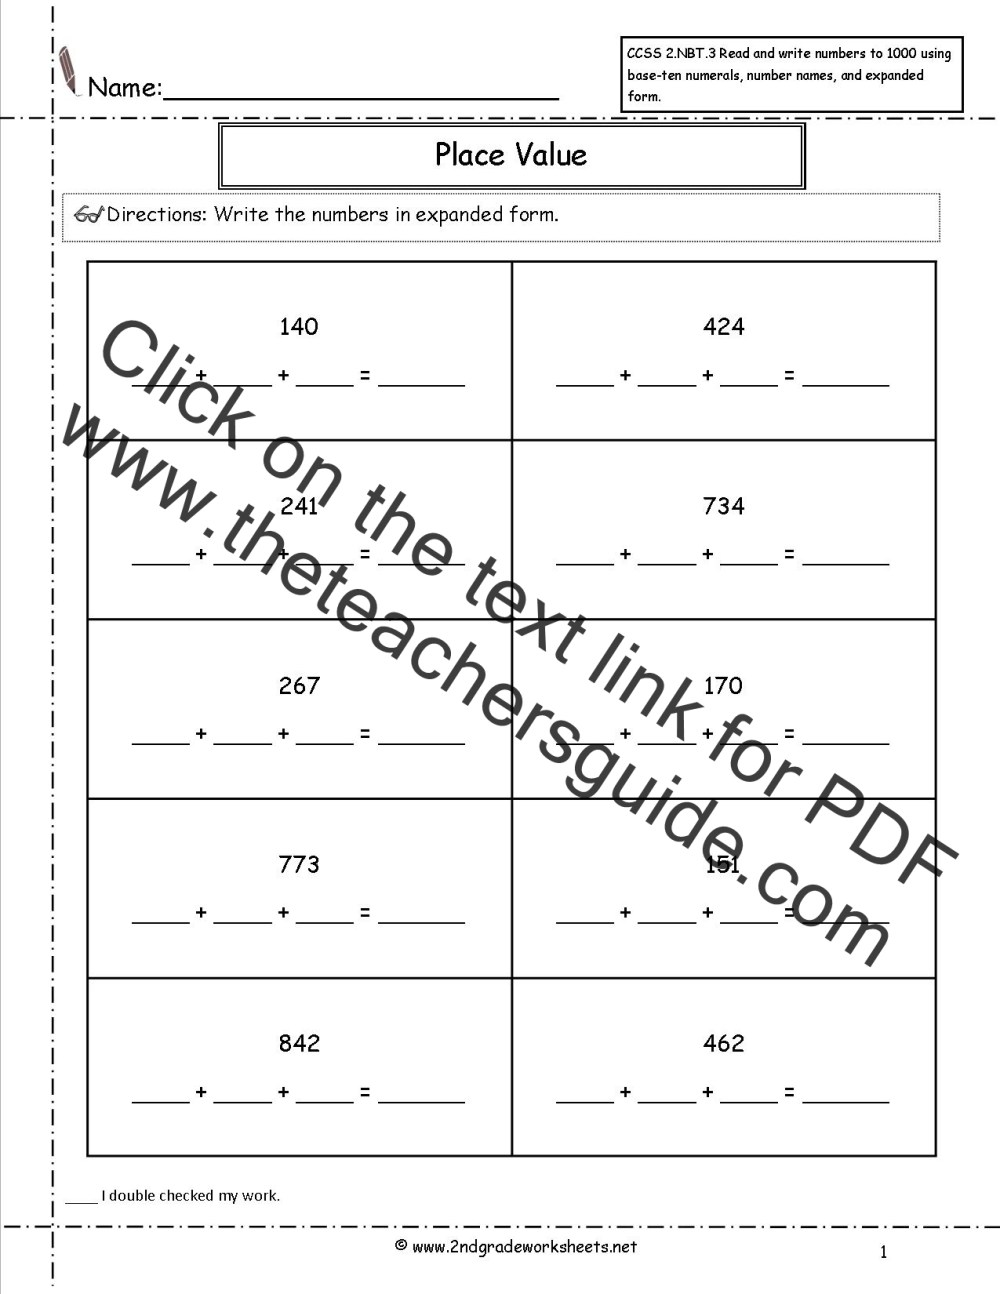 medium resolution of CCSS 2.NBT.3 Worksheets. Place Value Worksheets-Read and Write Numbers